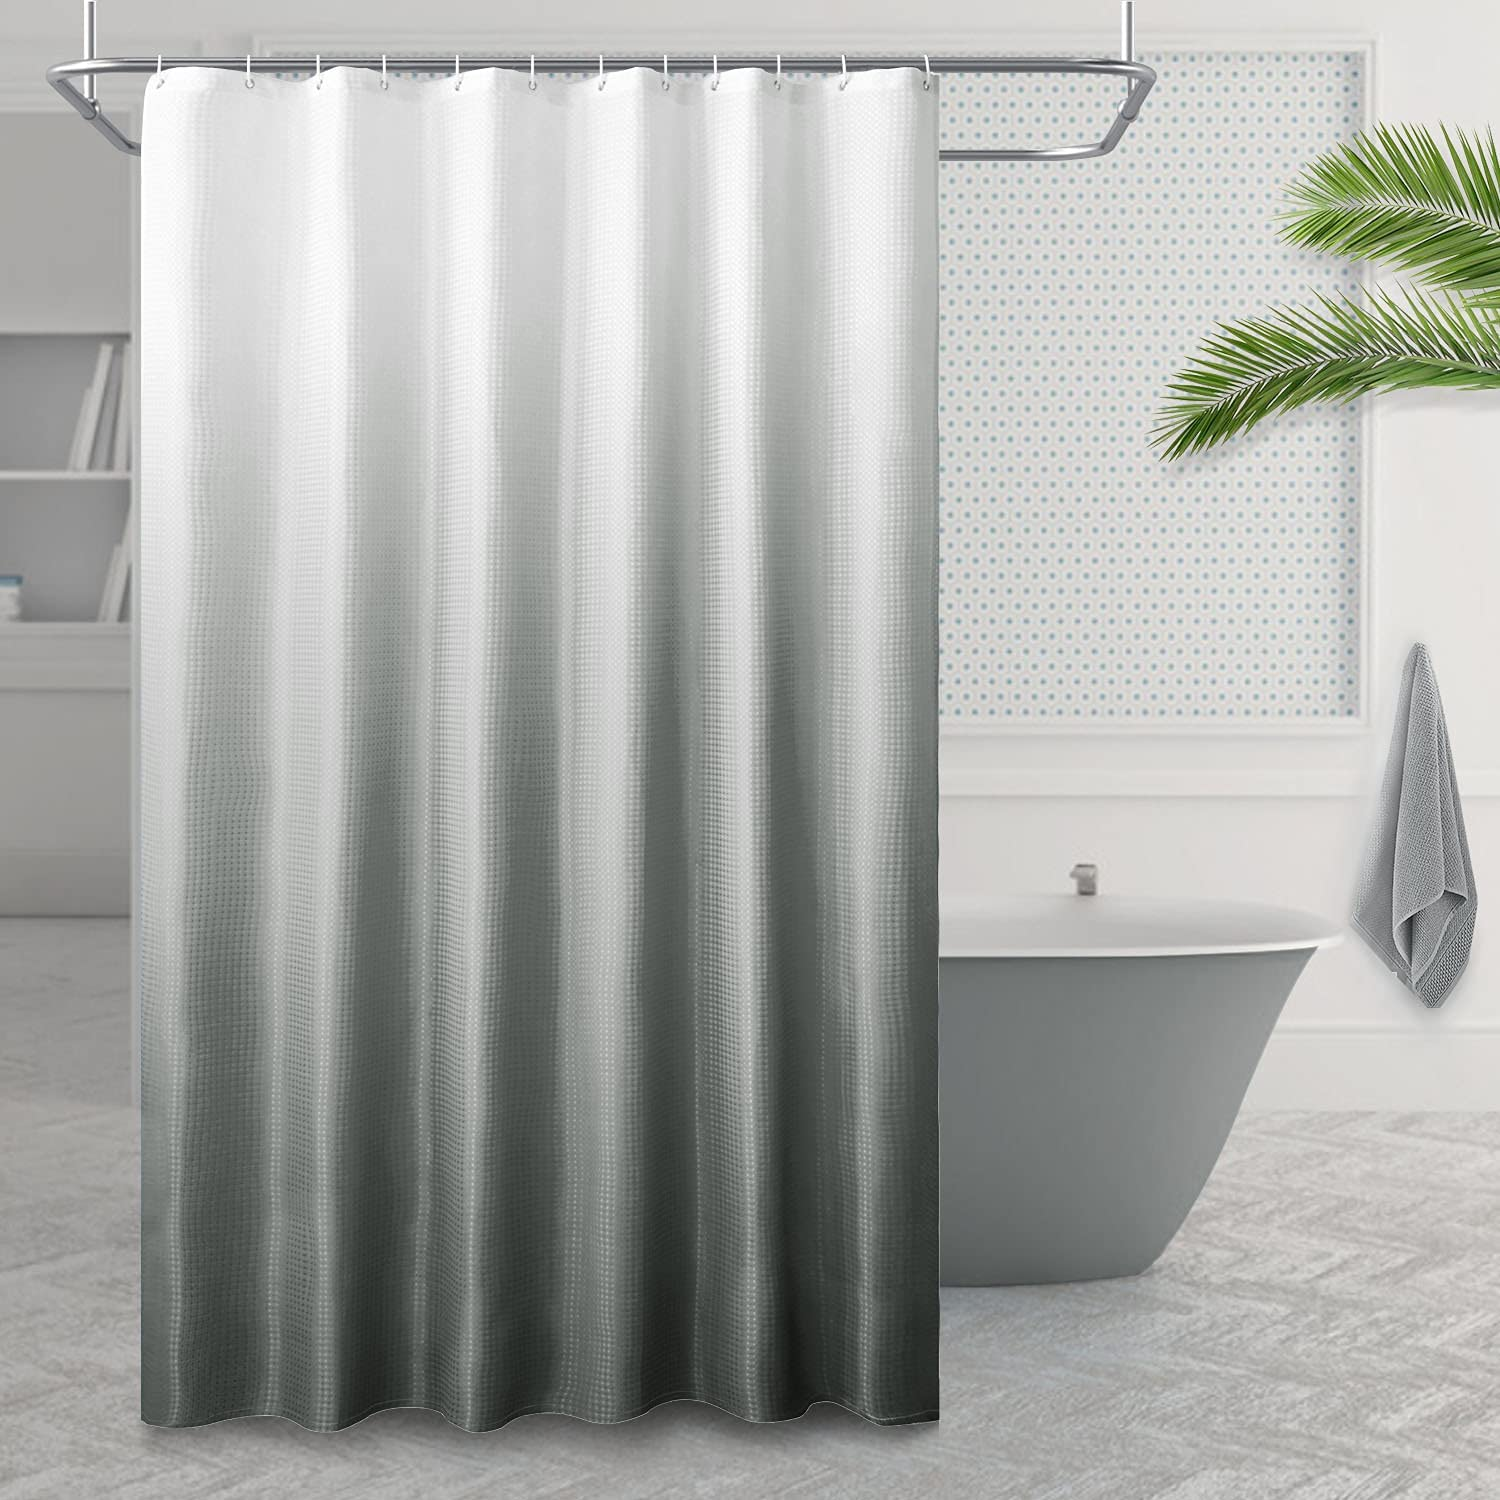 RIORIVA Cheap mail order sales Home Textured Ombre Mesa Mall Fabric Sets Shower Bath Curtains for